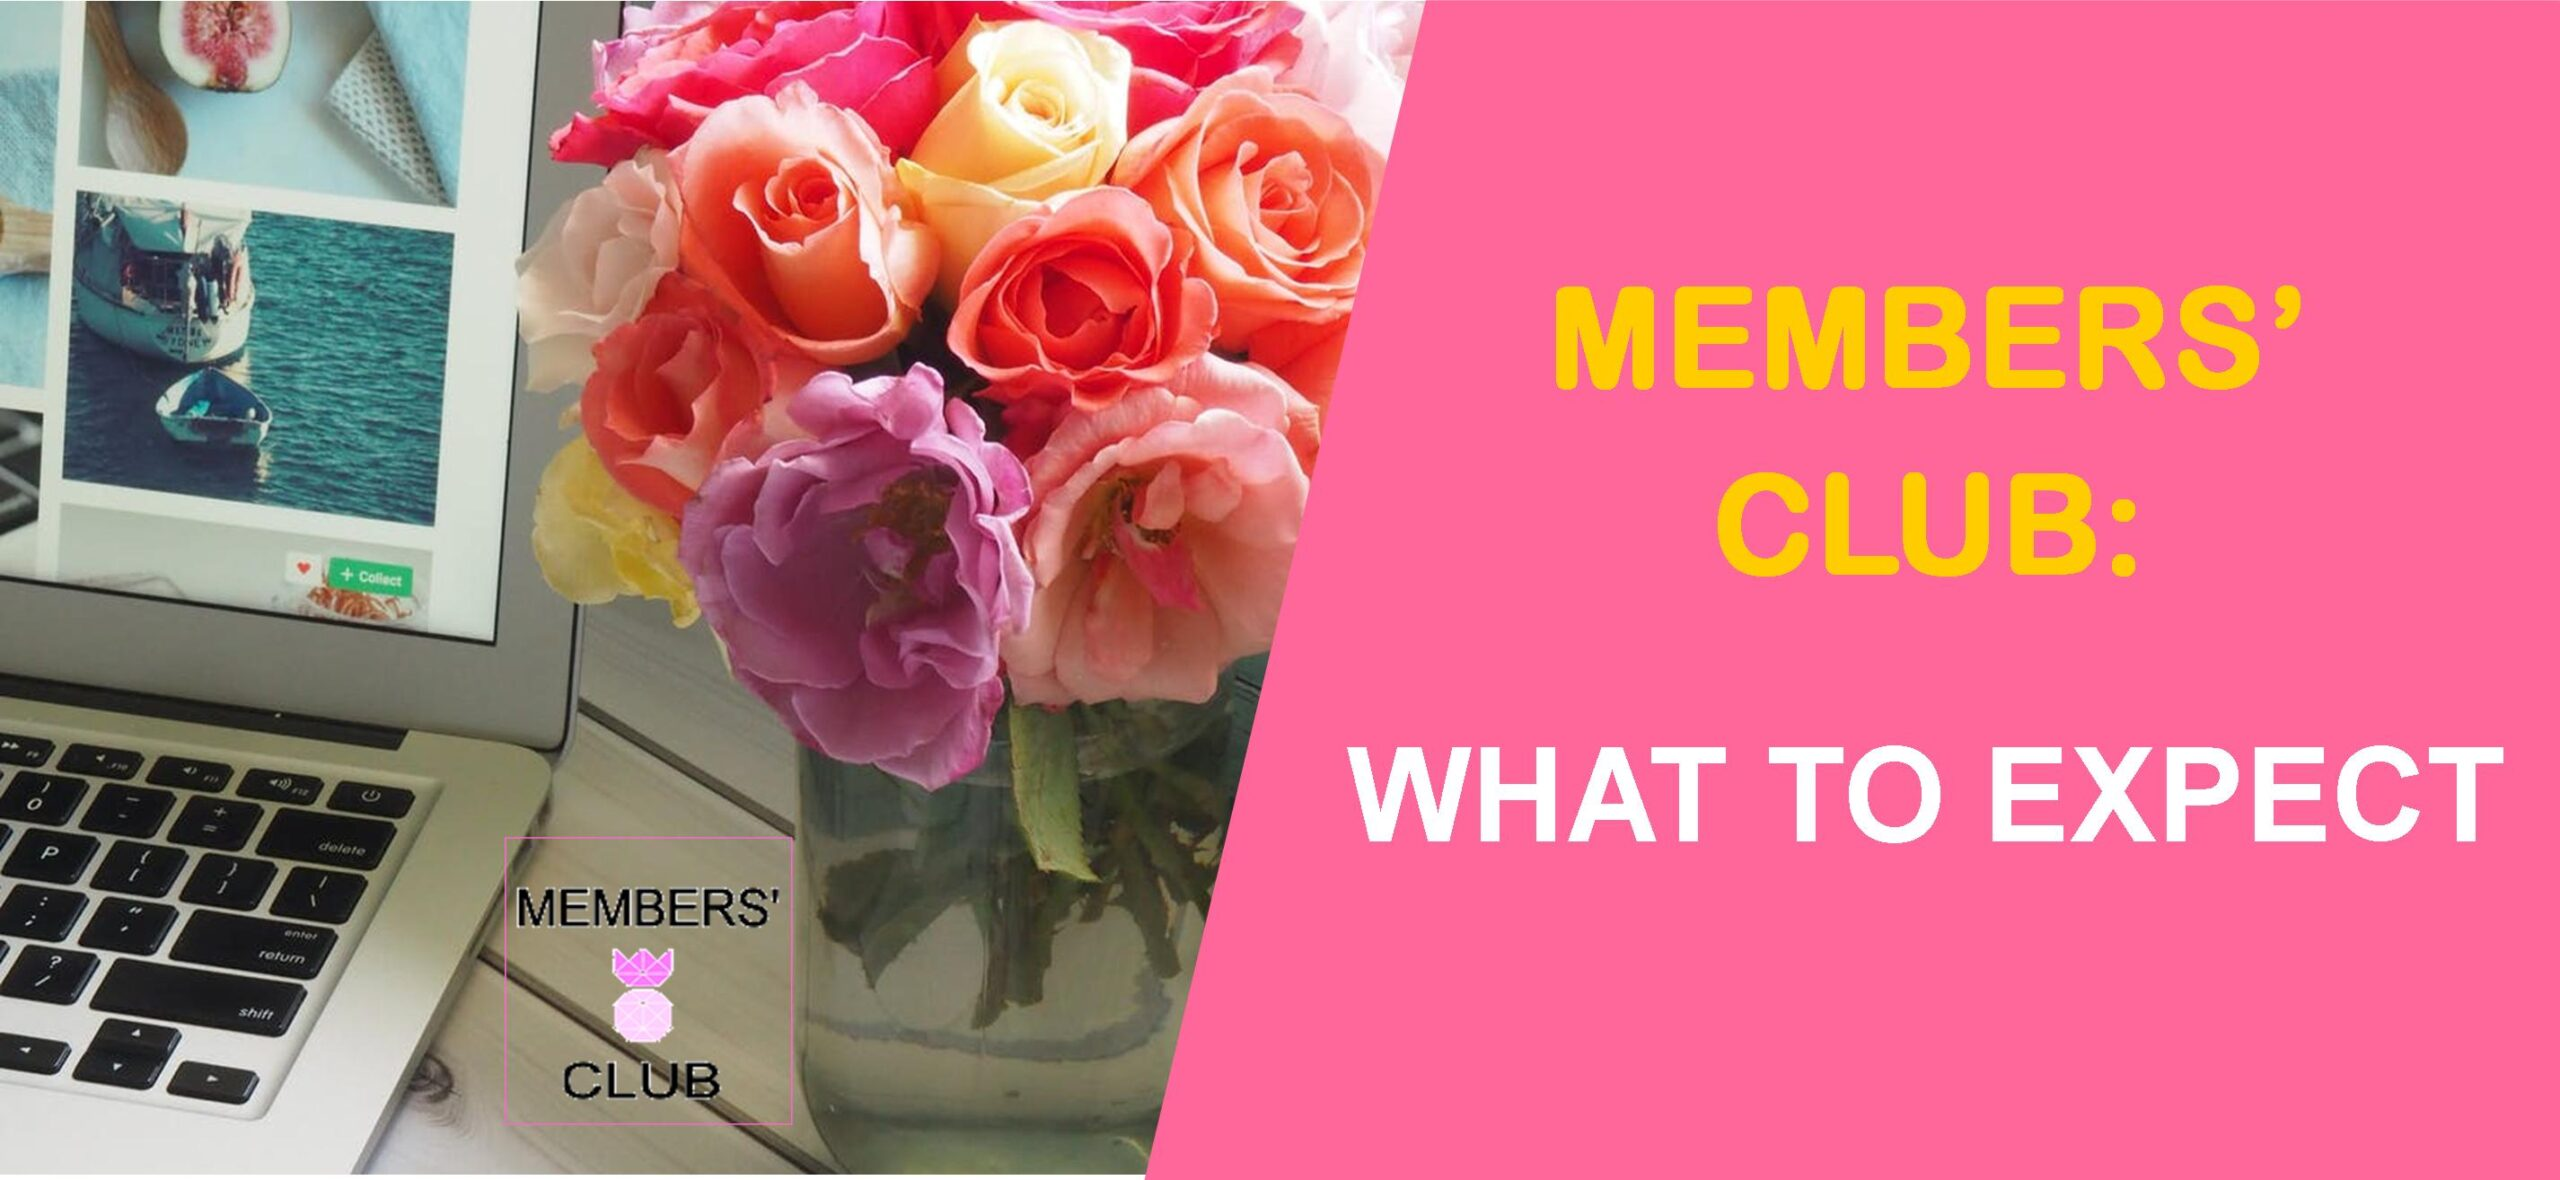 The Members' Club: What To Expect